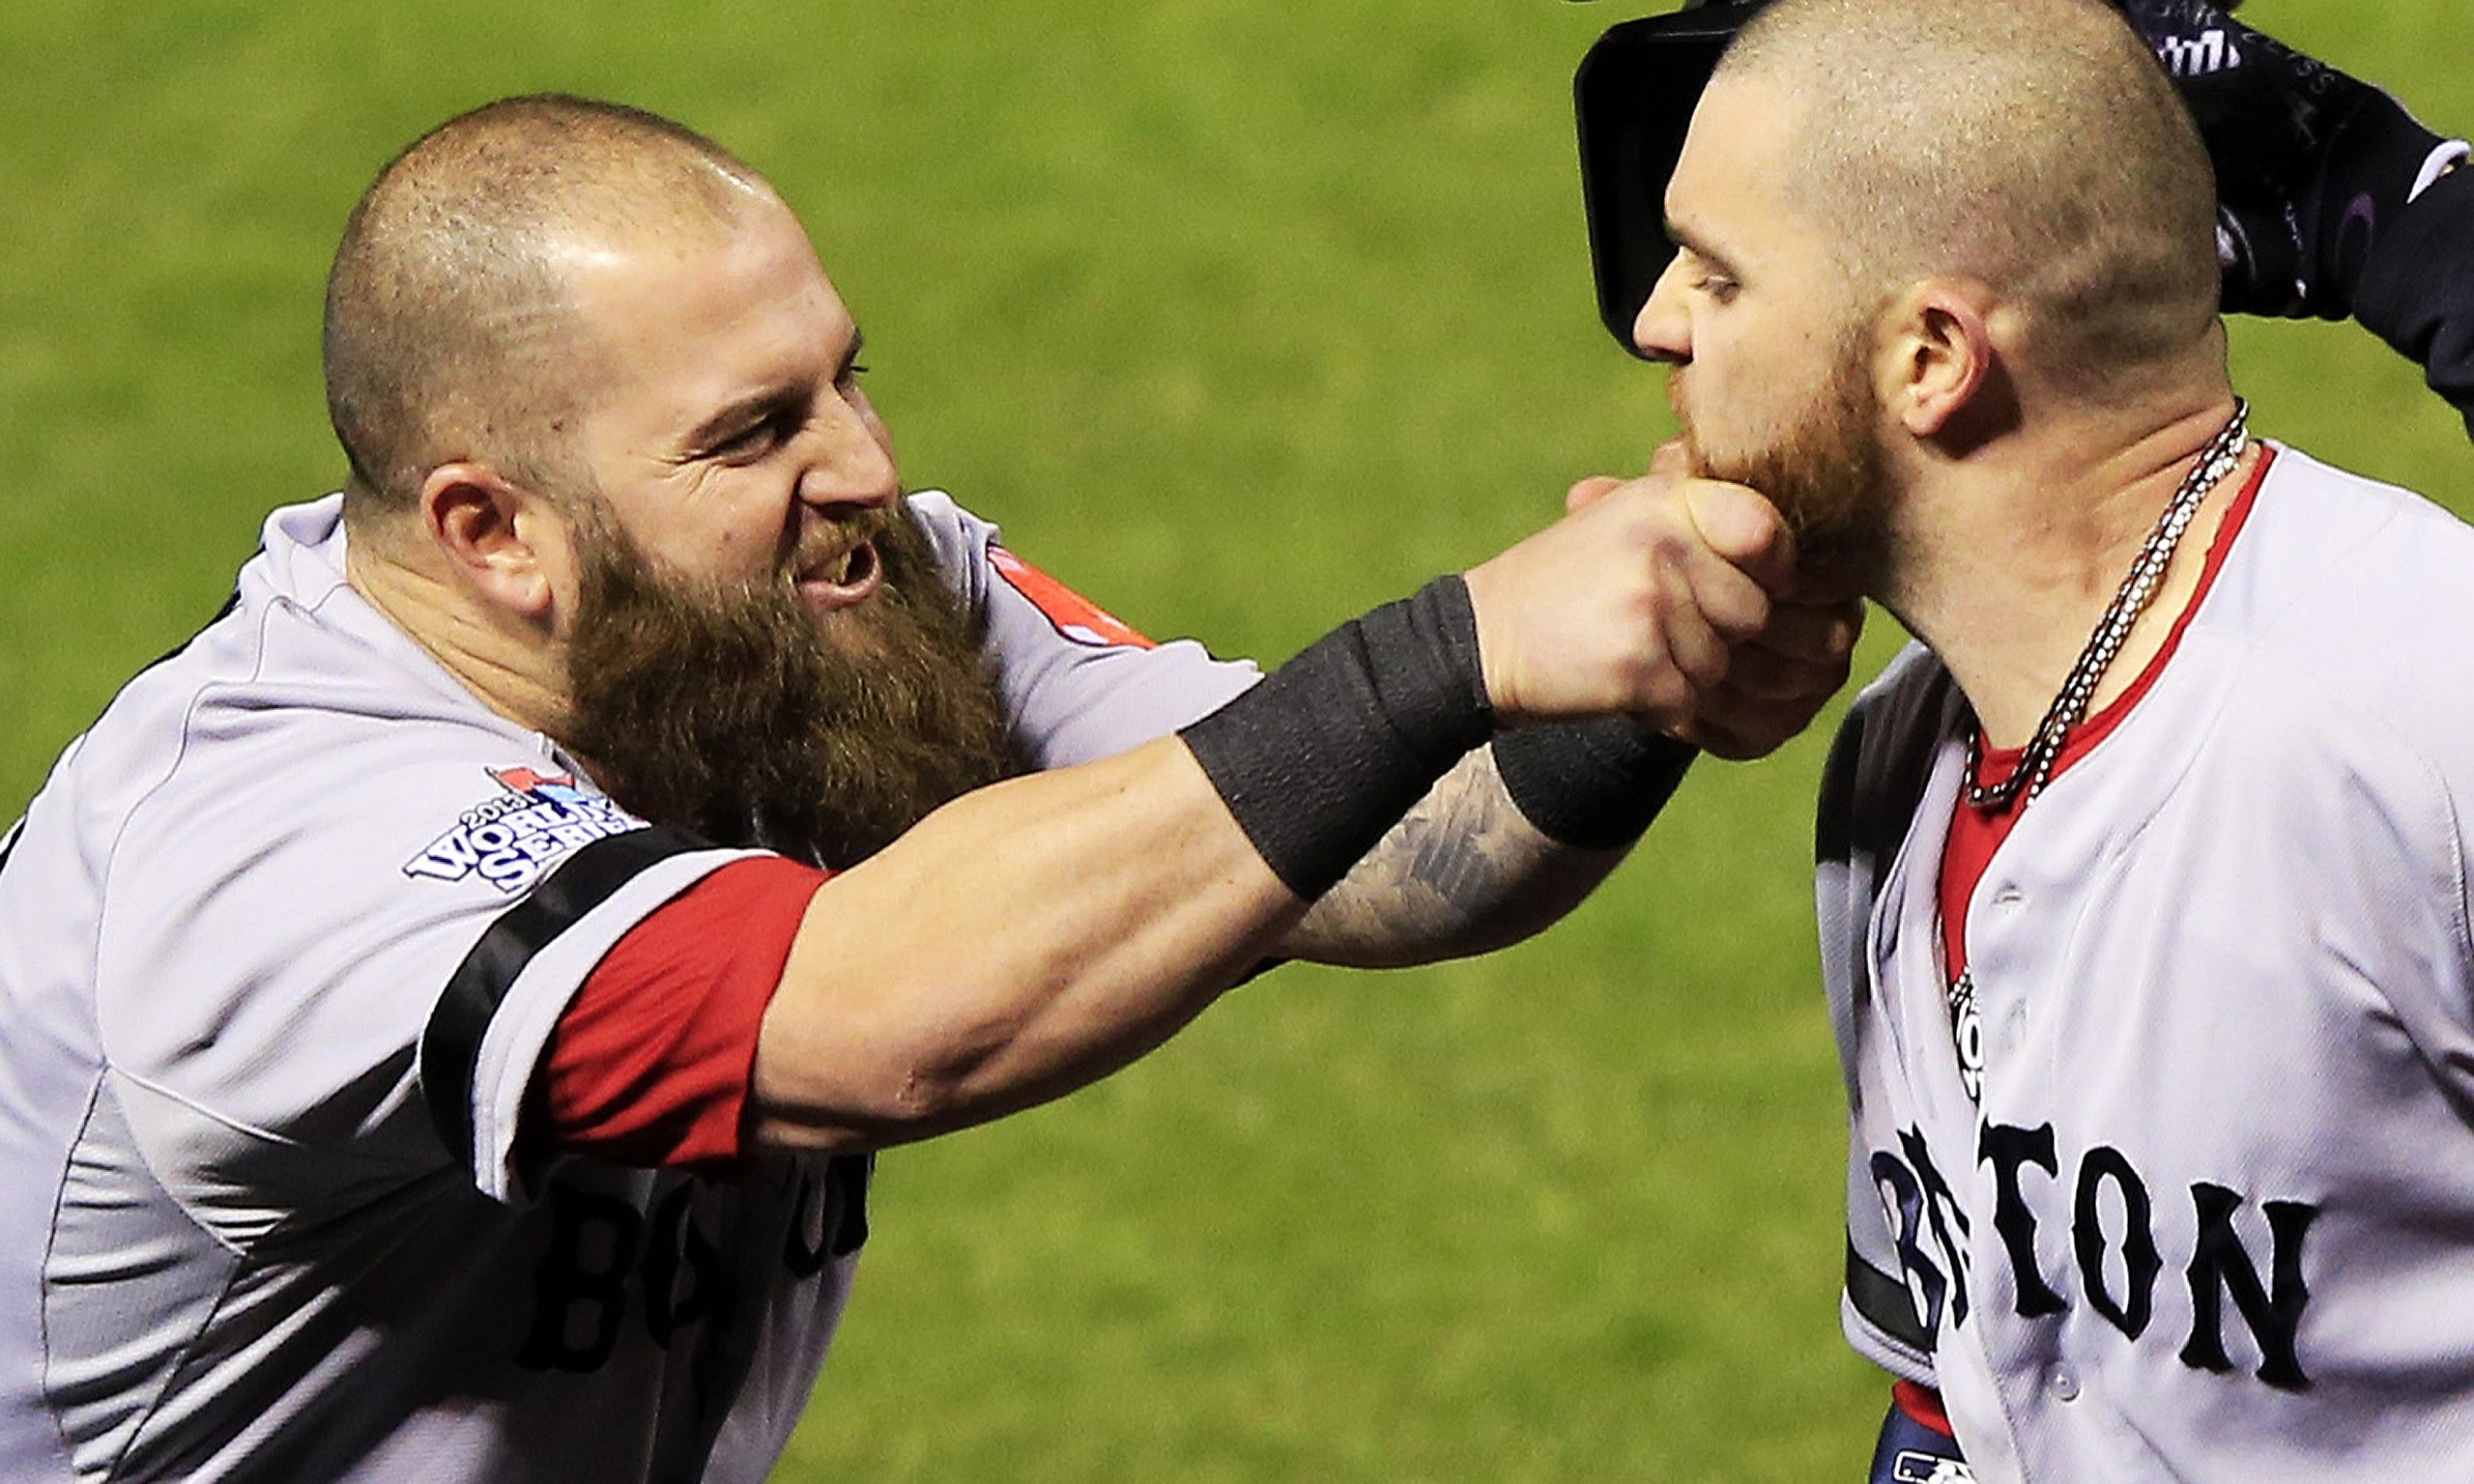 Mike Napoli and Jonny Gomes of the Boston Red Sox